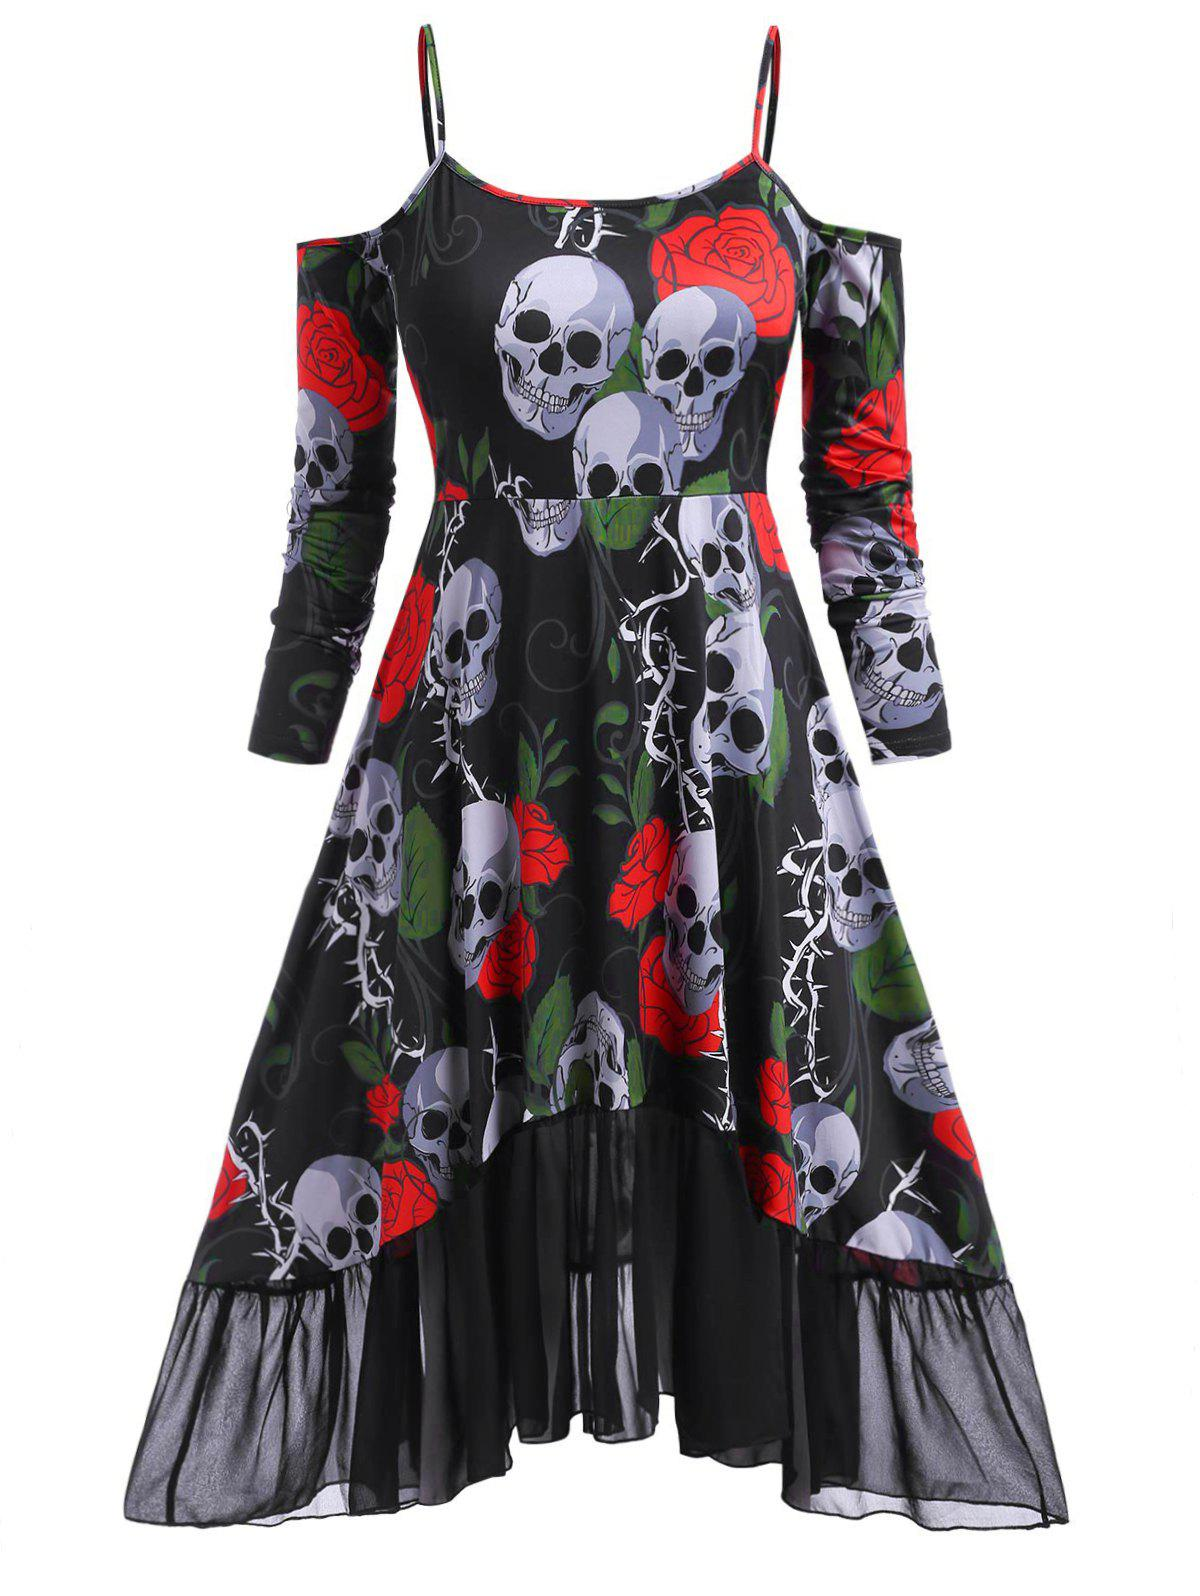 Floral Skull Open Shoulder High Low Halloween Plus Size Dress - RED 3X